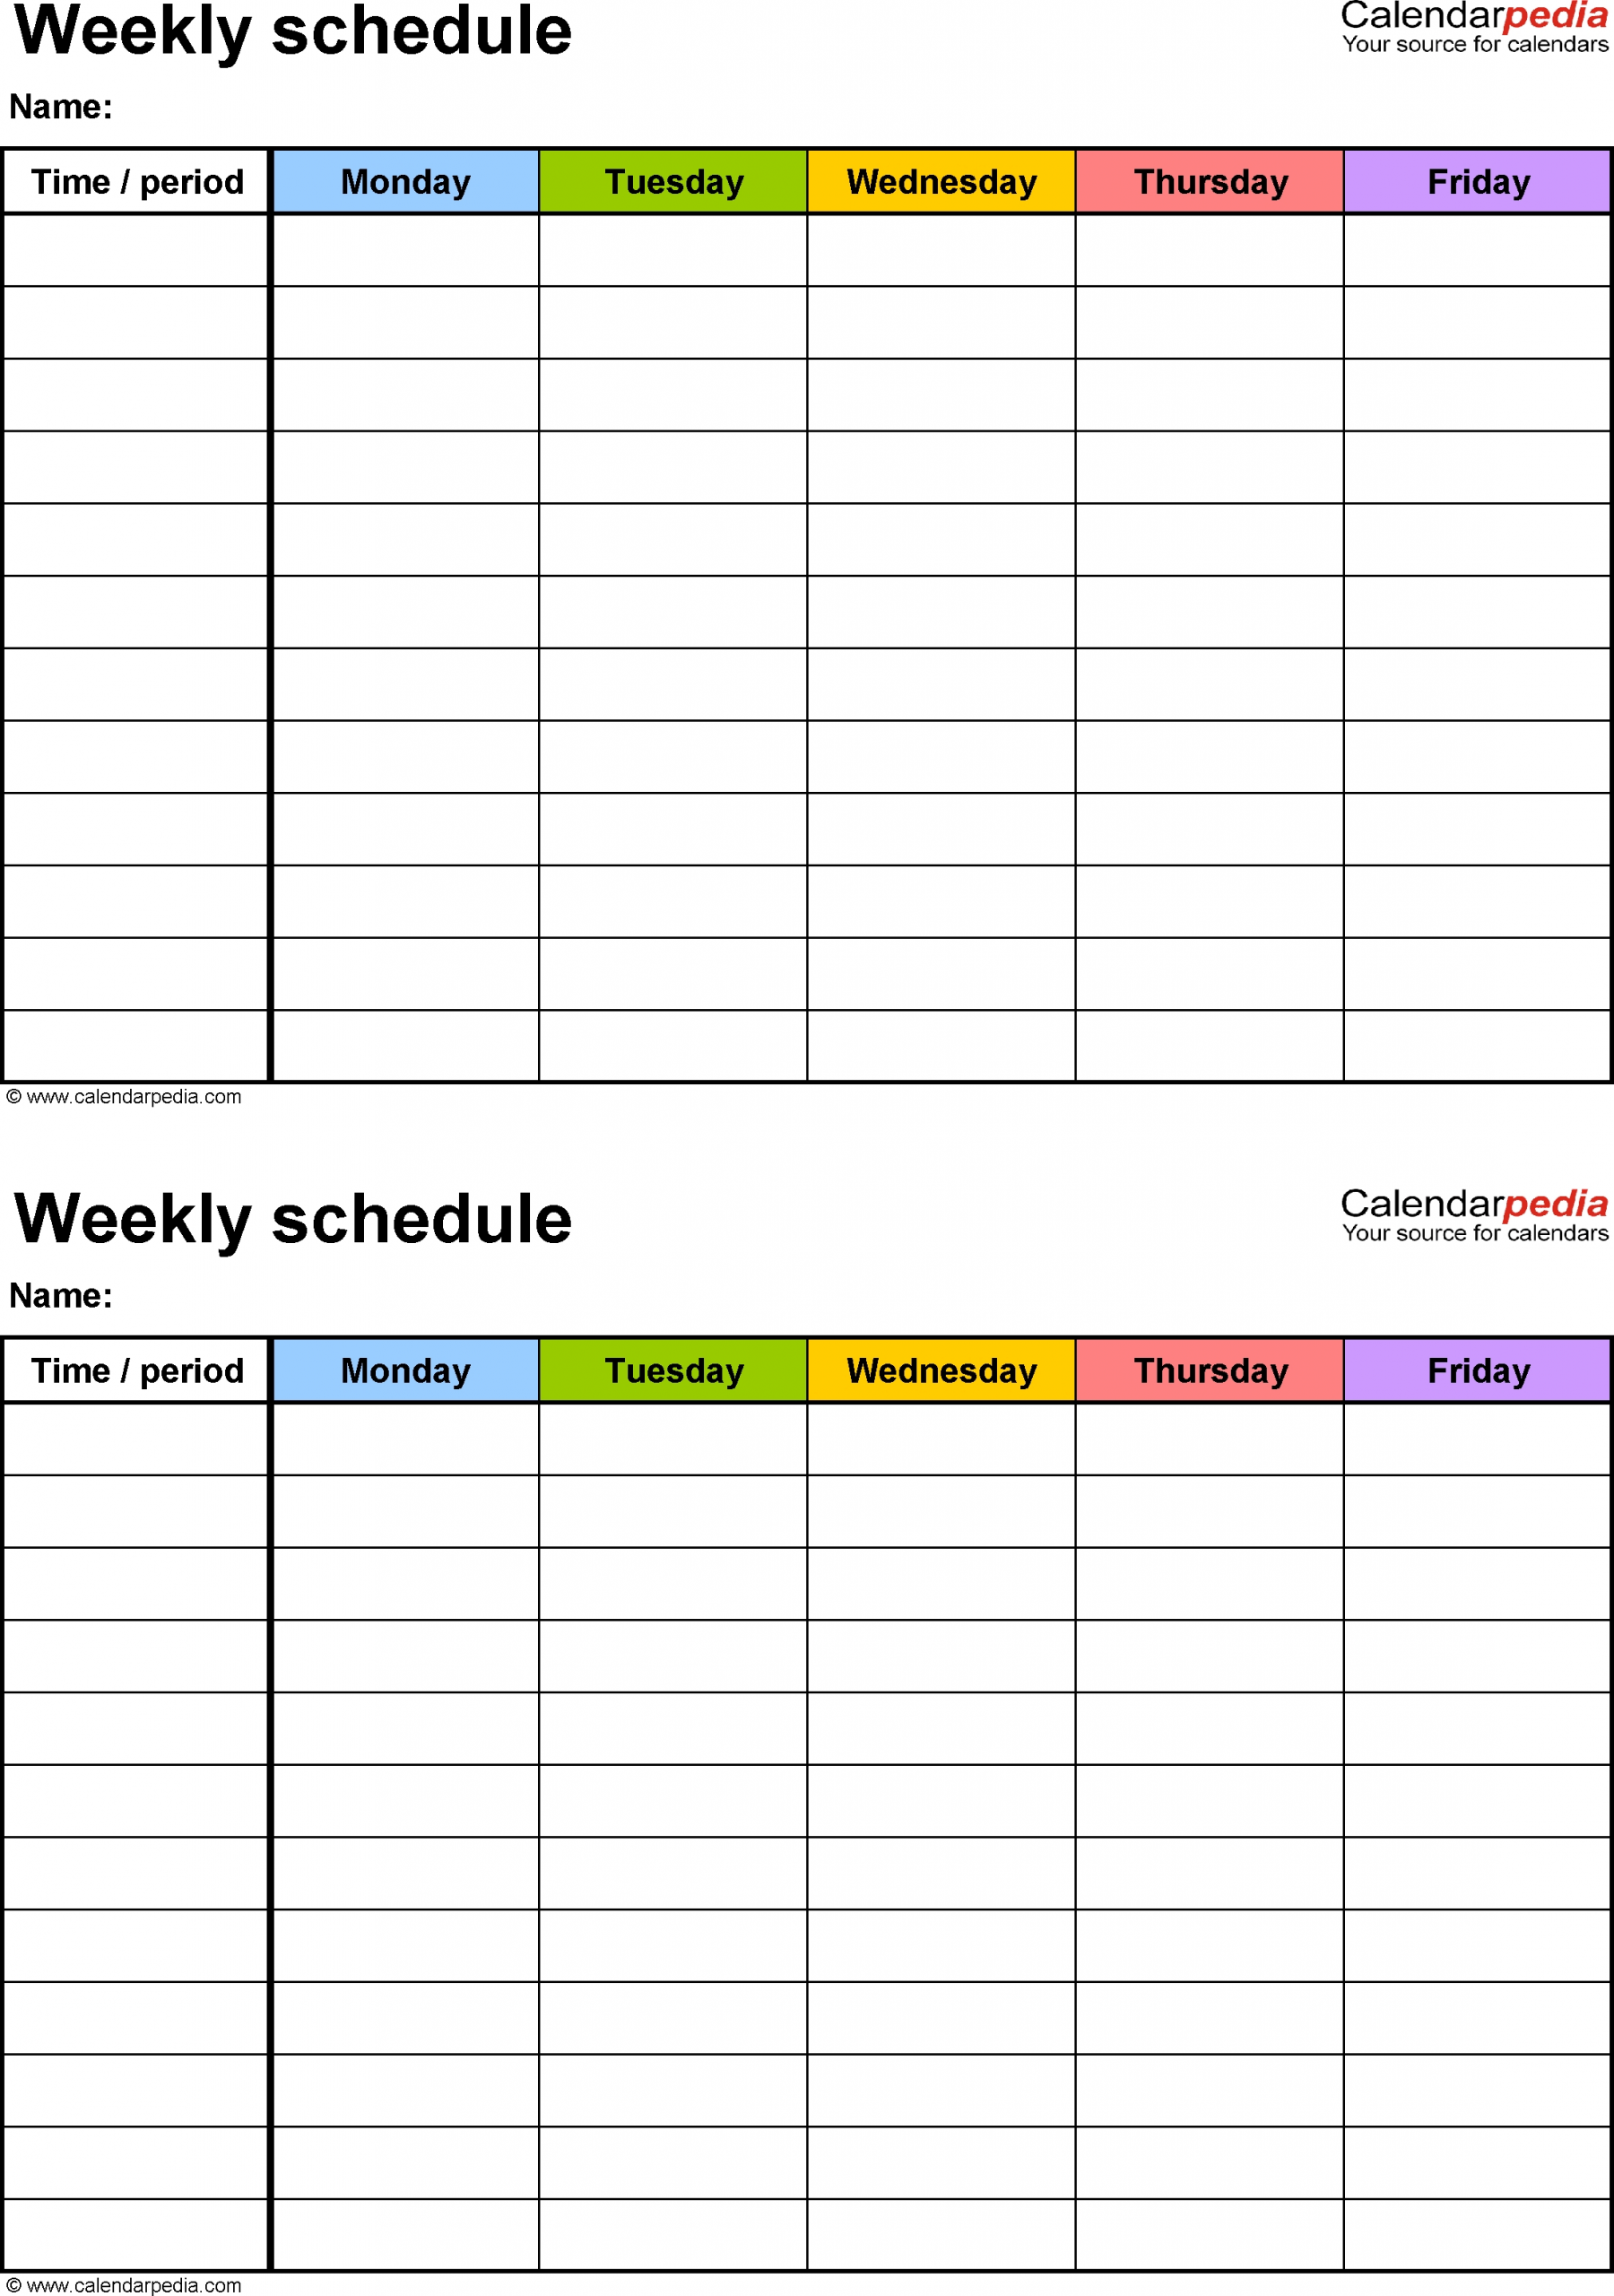 Printable Appointment Calendars Monday Through Friday Free Printable Calendars Monday Friday